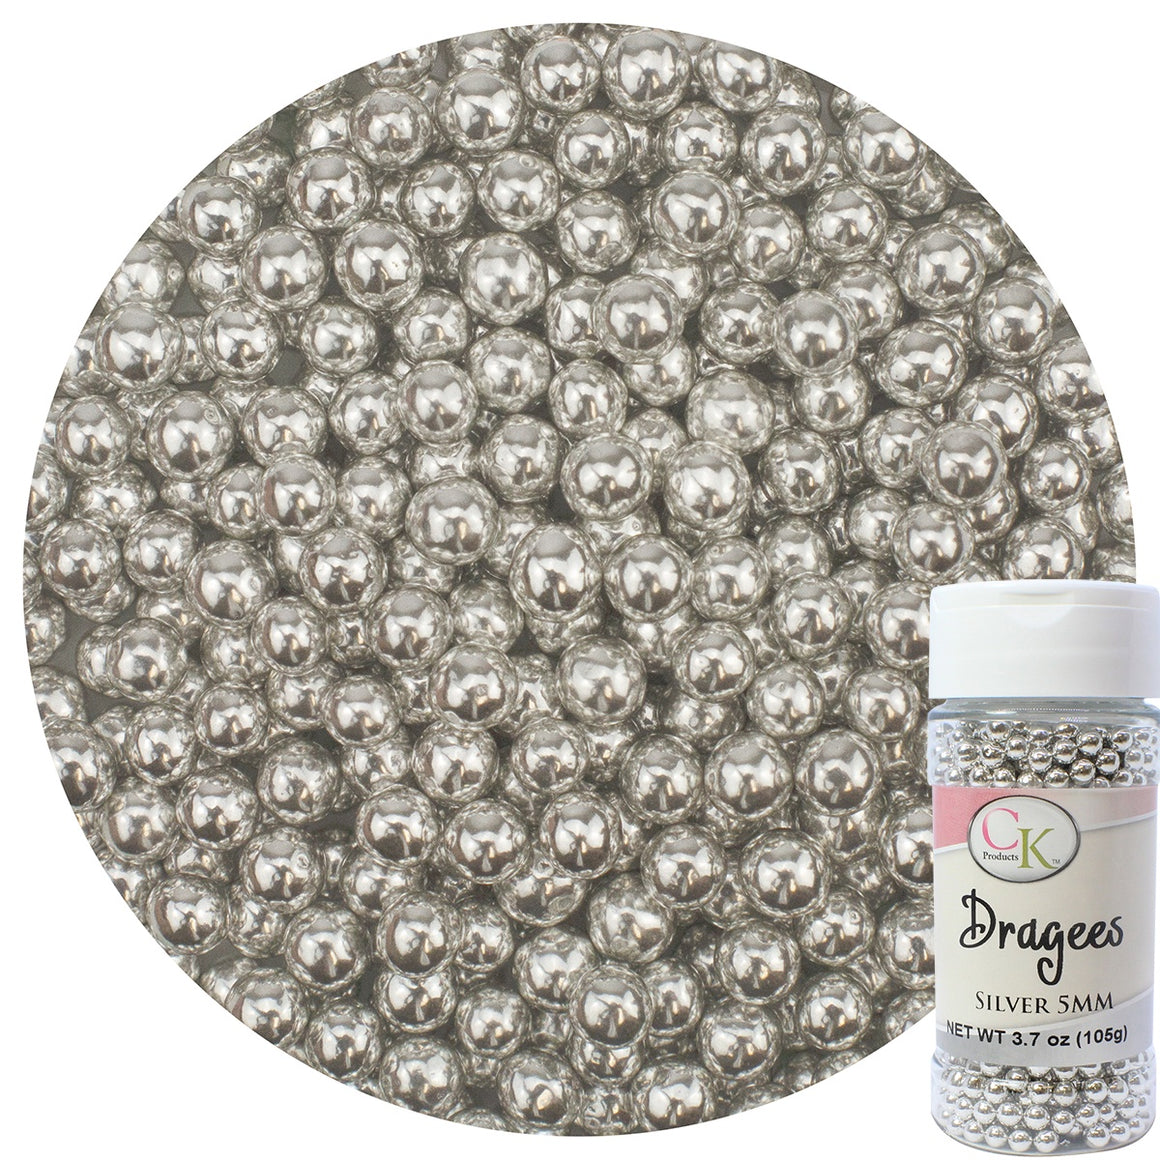 Dragees - 5mm Silver